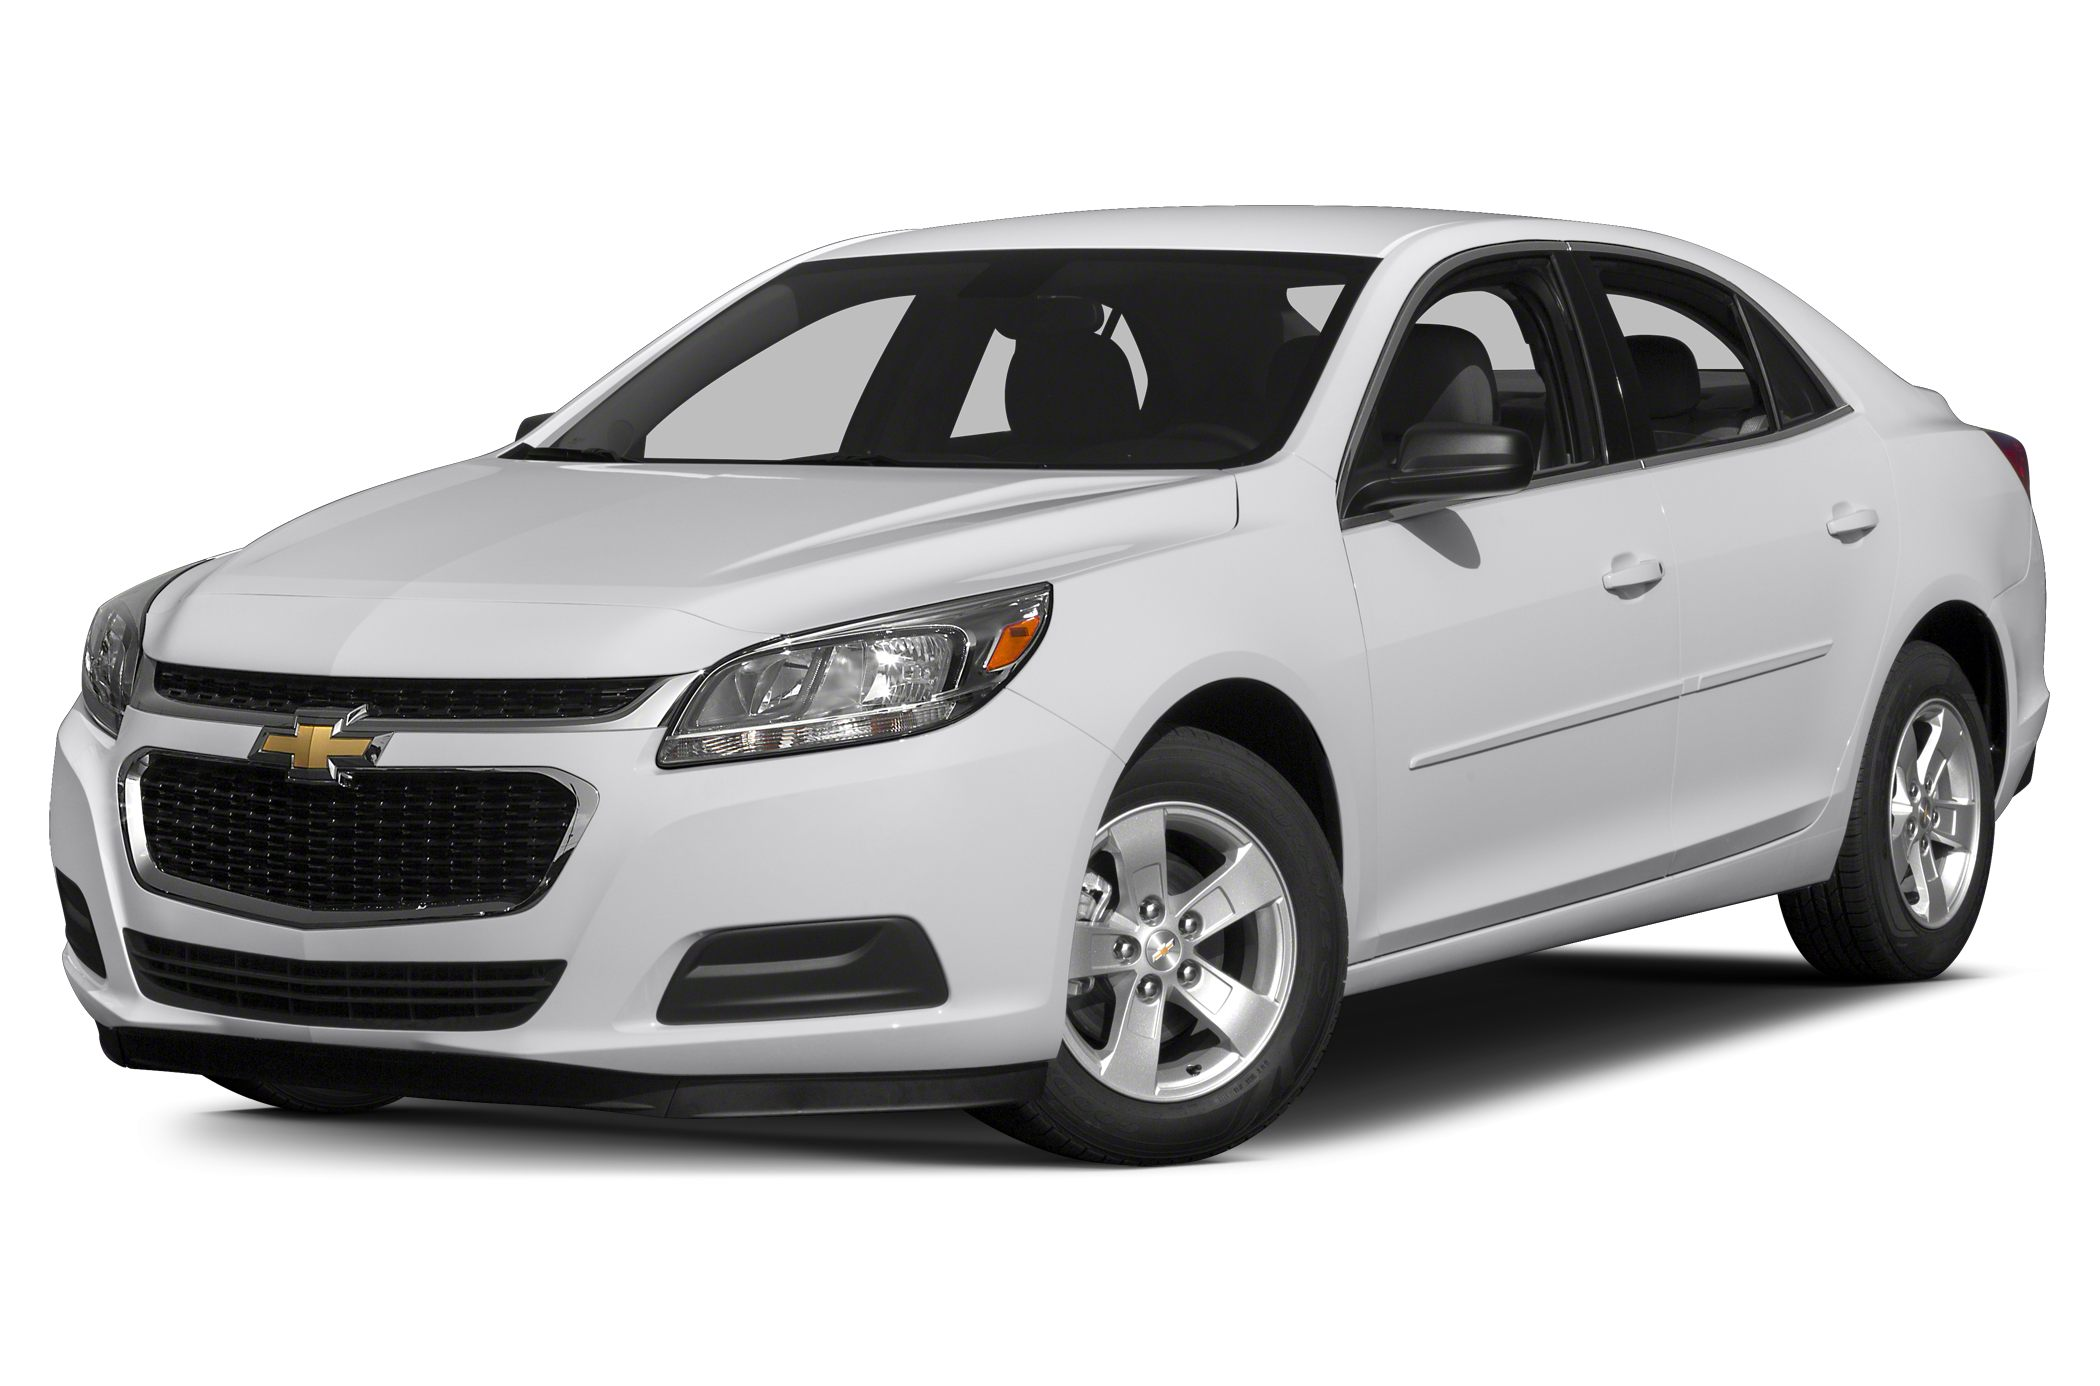 2015 Chevrolet Malibu 2LT Sedan for sale in Newark for $26,815 with 0 miles.